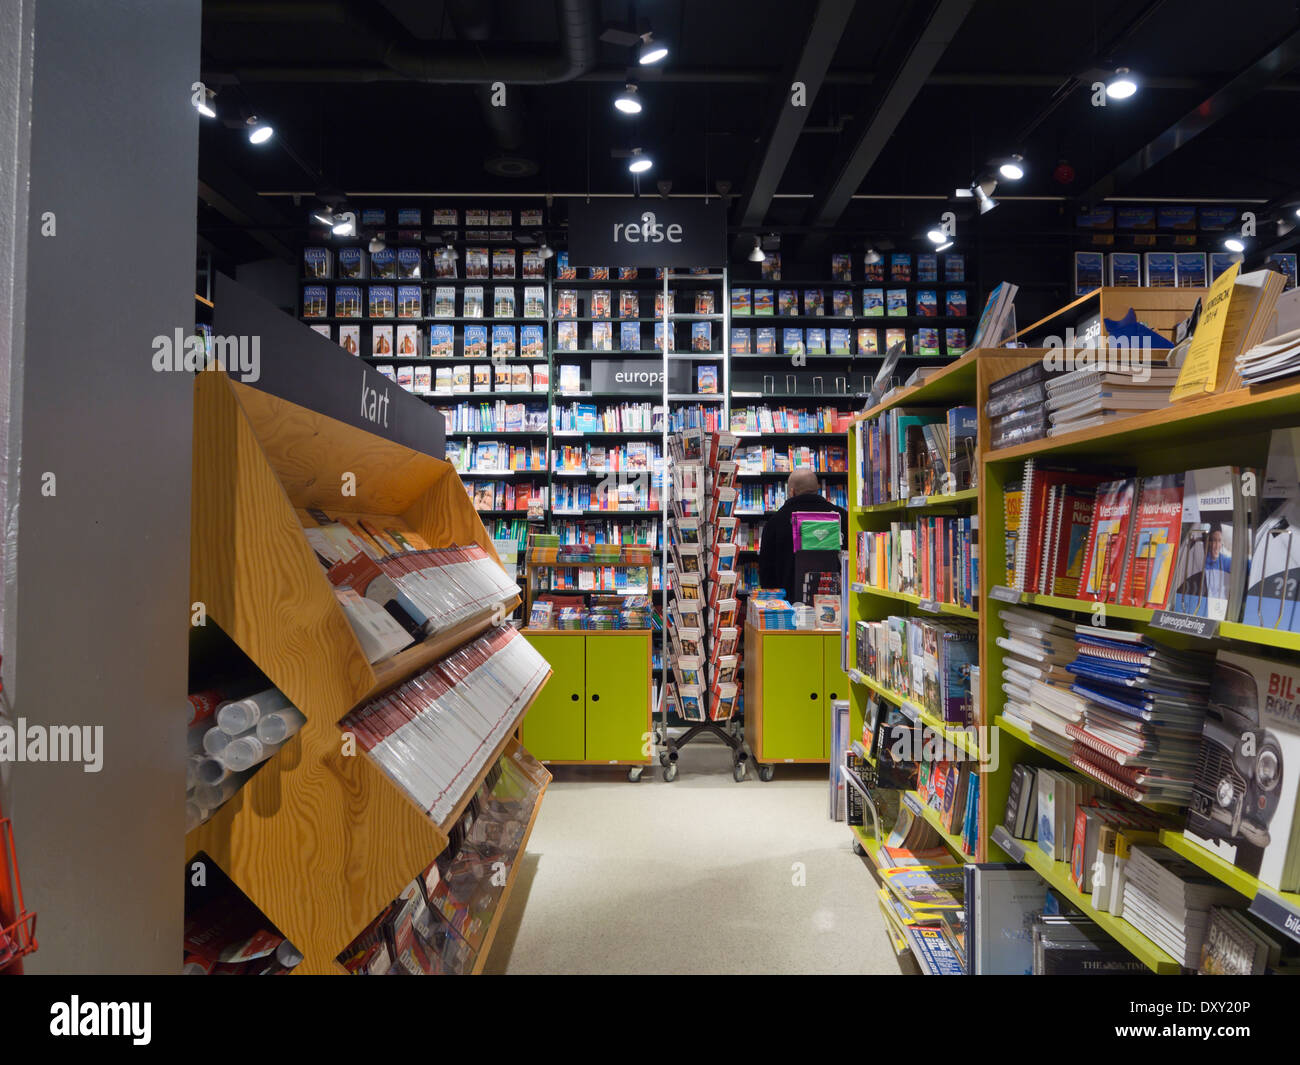 Norway has a good selection of bookshops with many languages represented, here the  travel section at Tanum Oslo - Stock Image